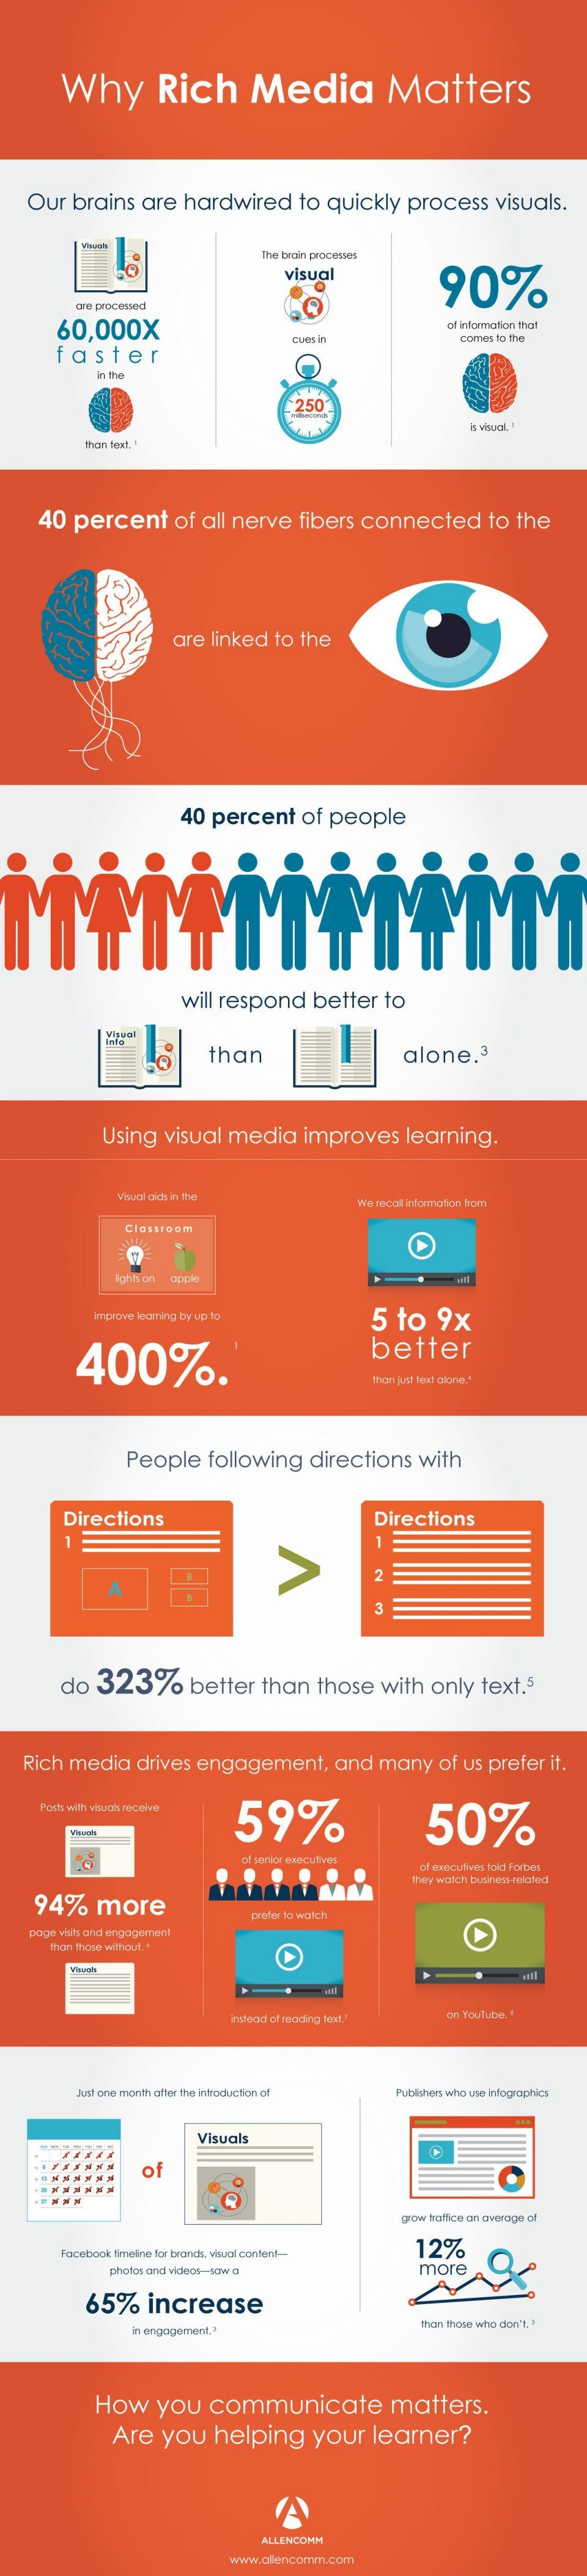 Boosting Learner Engagement with Rich Media Infographic